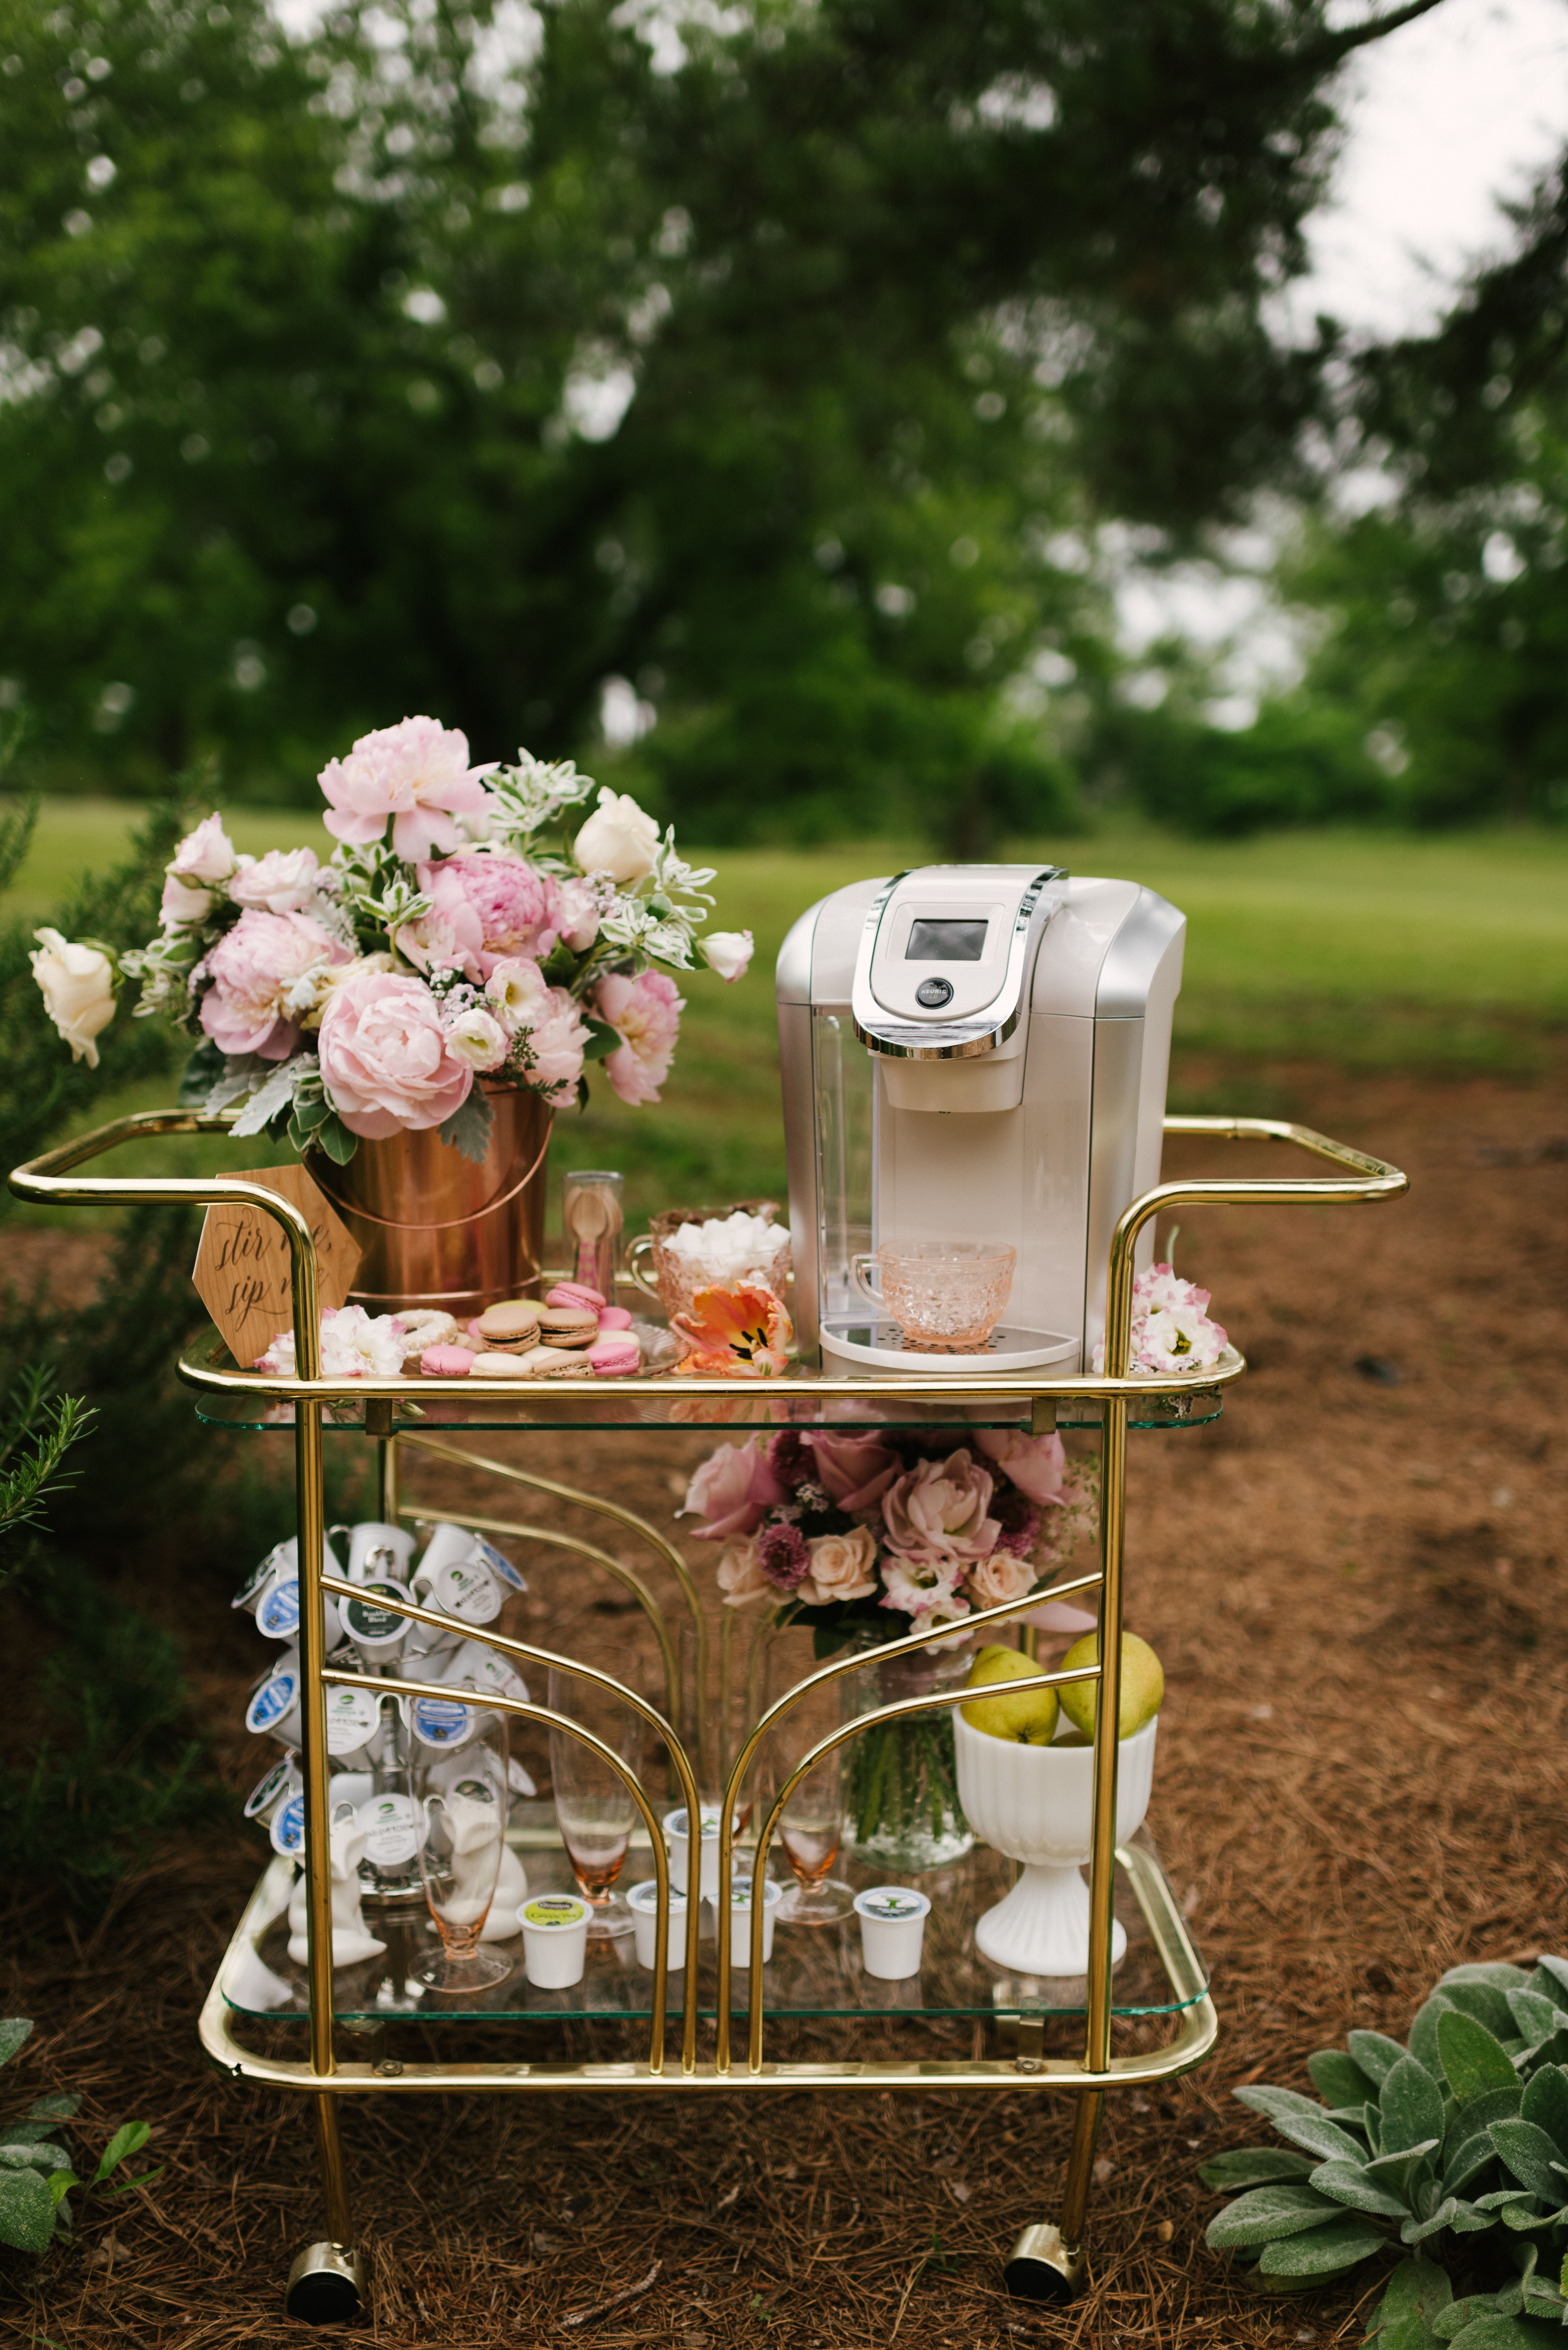 Create a whimsical Keurig Coffee Bar to wow your guests at ...